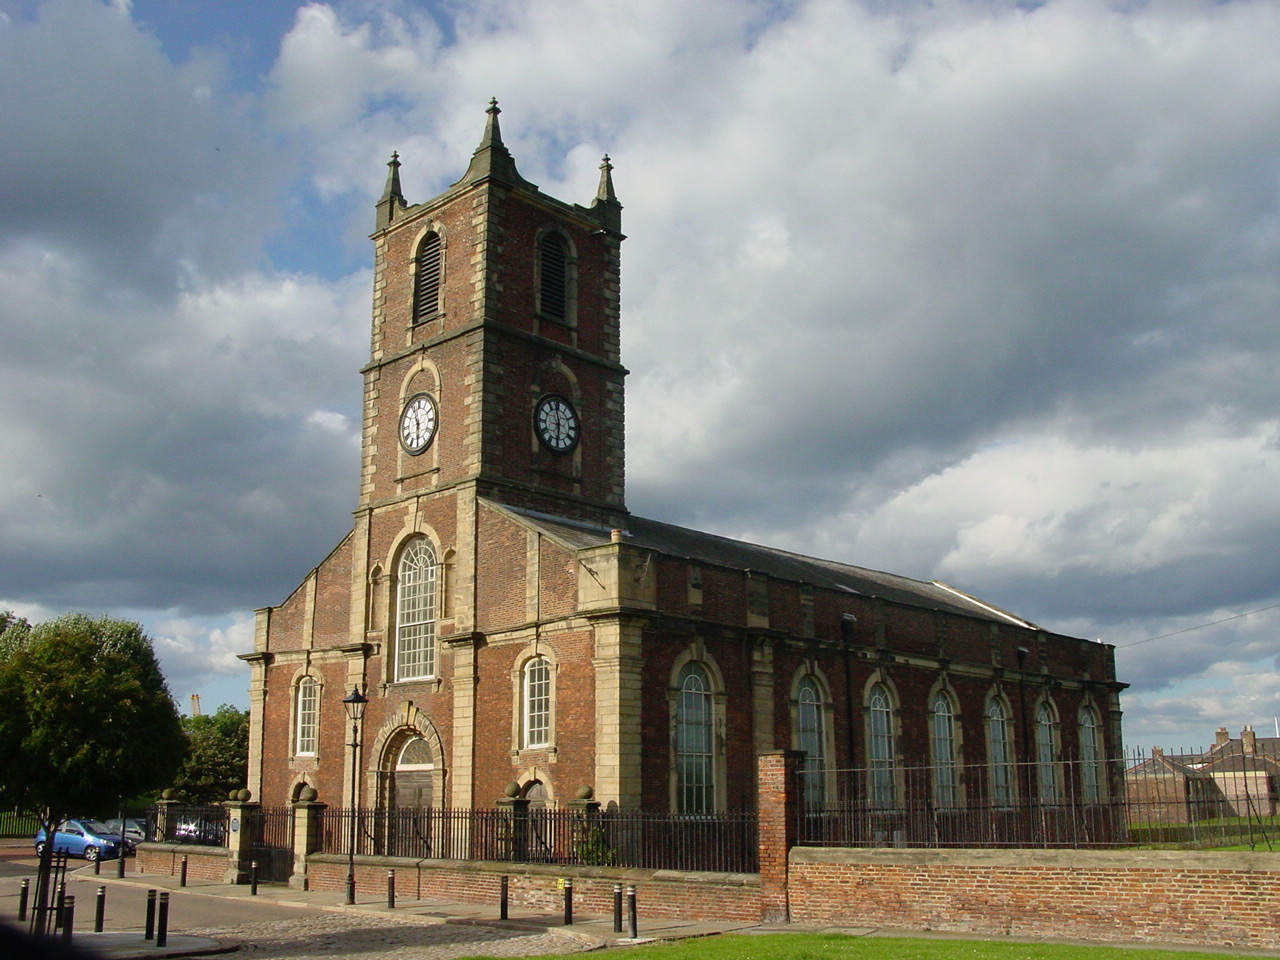 Picture shows modern view of stately Sunderland Parish Church, now in care of conservationists